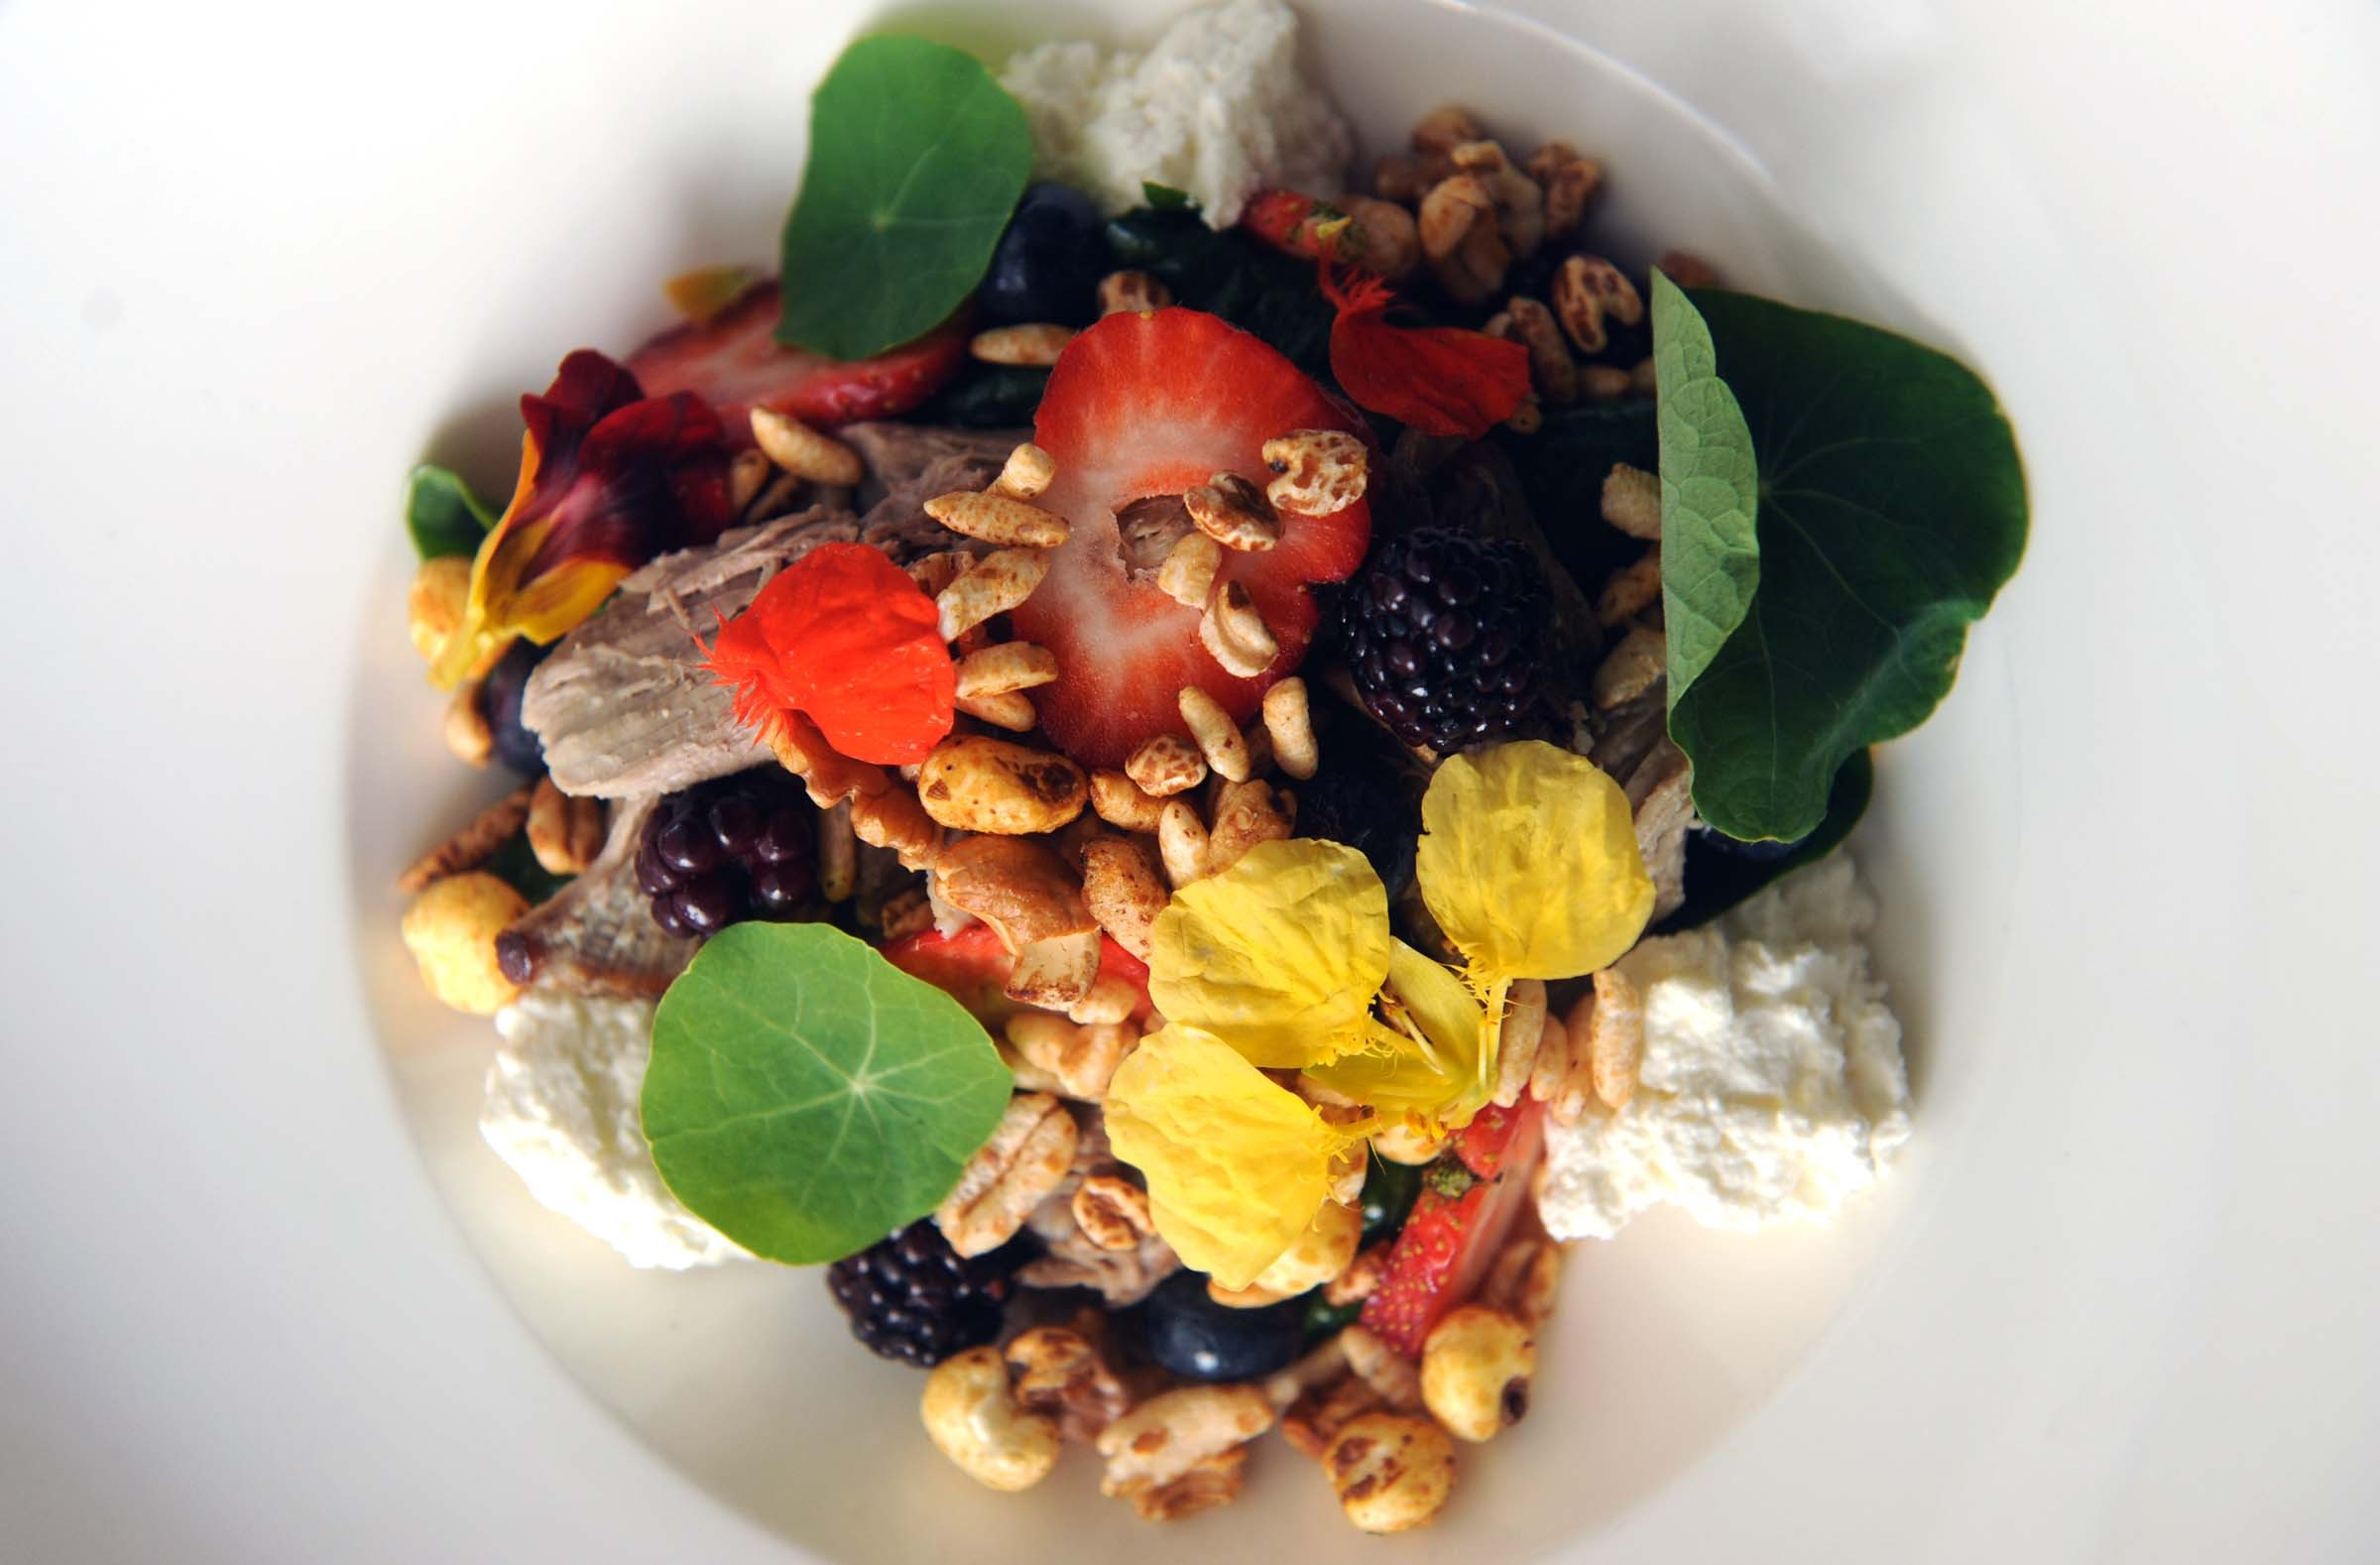 At Dutch & Co., milk-braised veal is surrounded by granola, pickled berries, spinach and ricotta in a composition that's delightfully nuanced. - SCOTT ELMQUIST